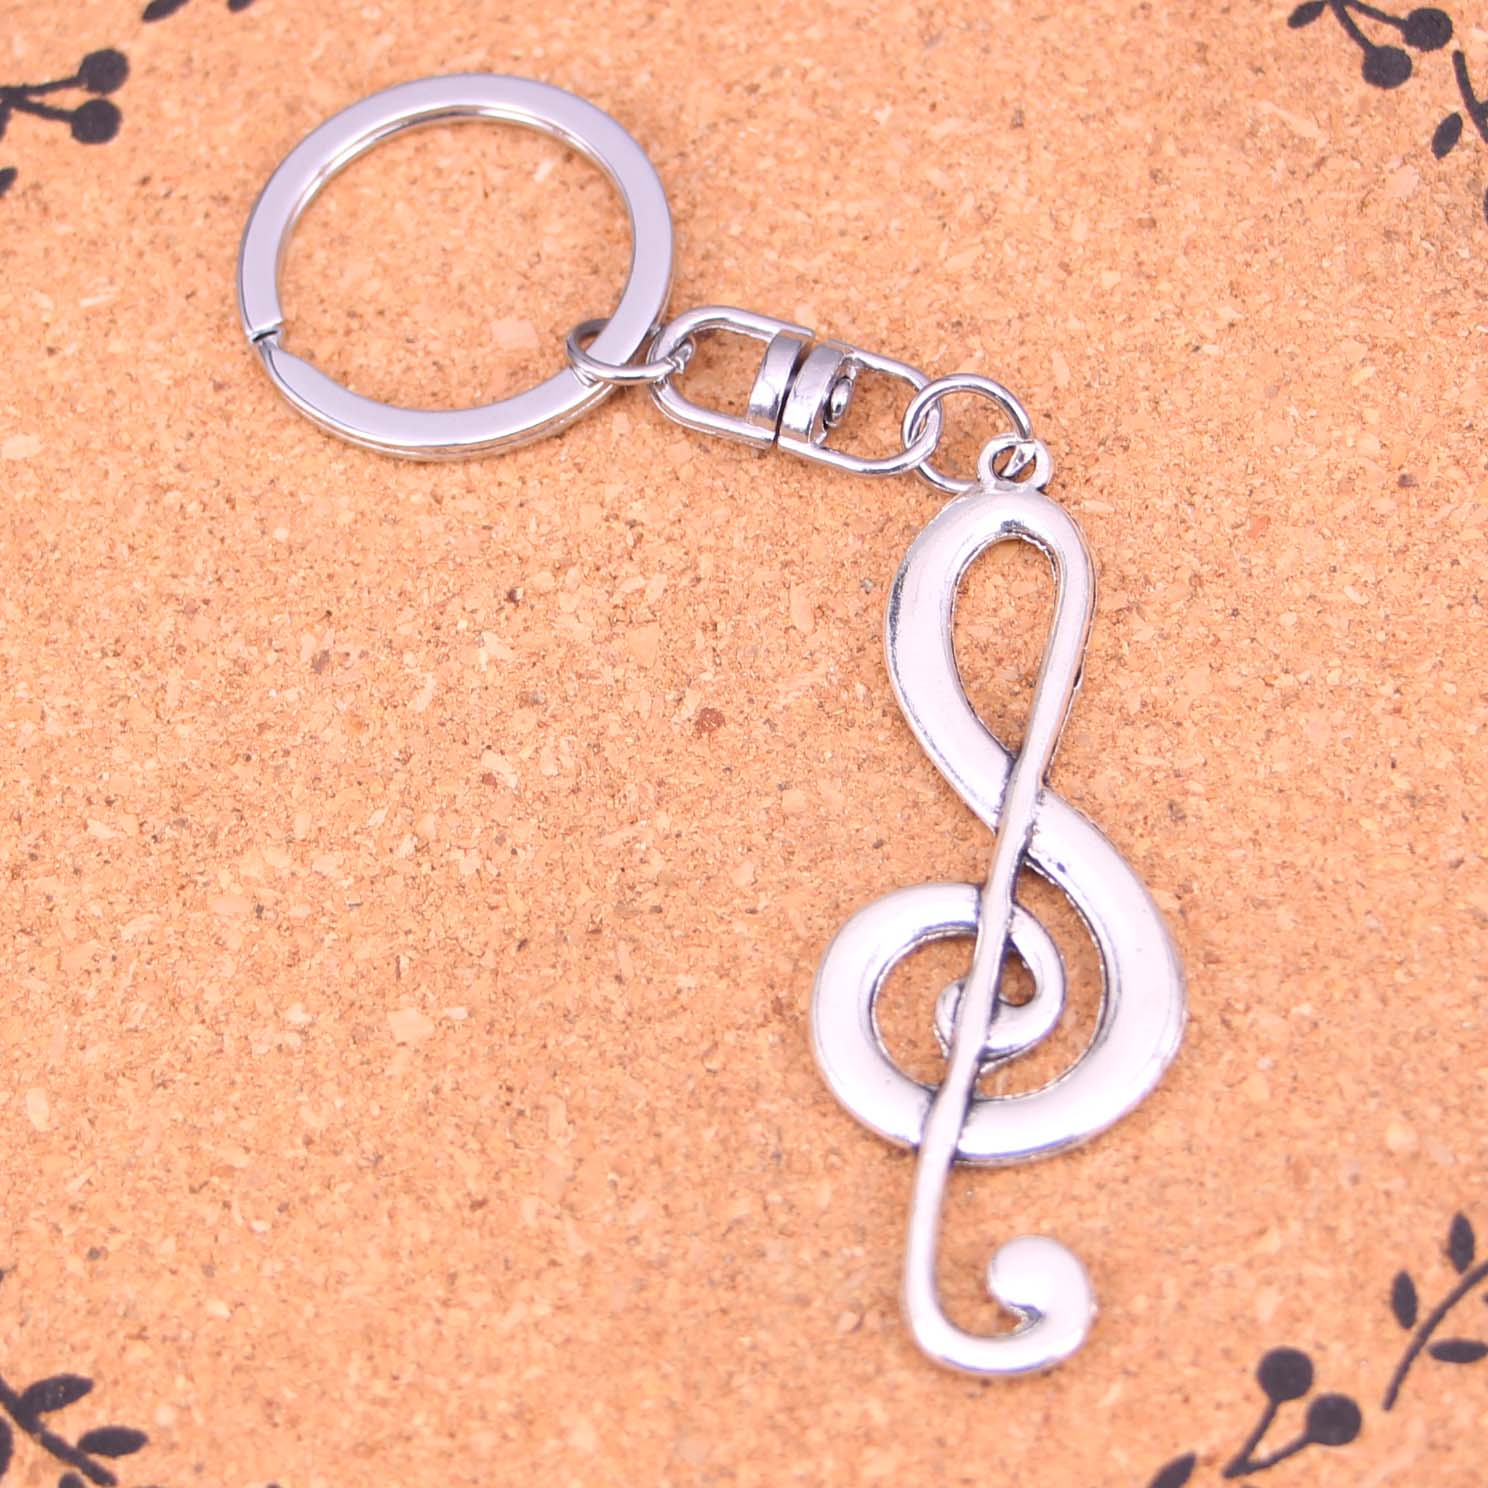 Jewelry & Accessories Key Chains Honesty 20pcs Musical Note Keychain Novelty Gadget Trinket Souvenir Christmas Gift Keychain Drop Shipping